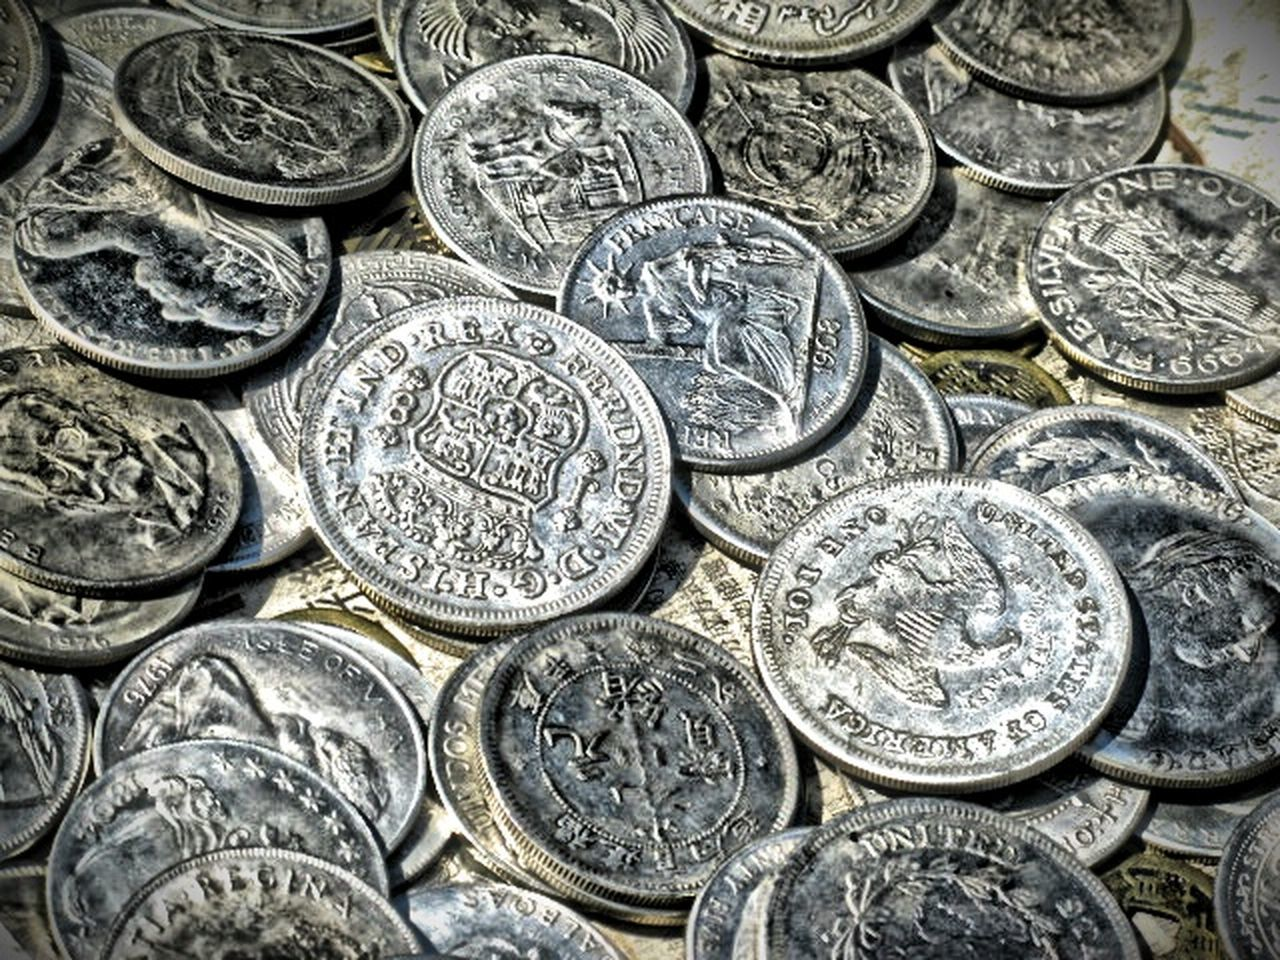 wealth, coin, finance, metal, currency, still life, silver colored, human representation, no people, savings, silver - metal, full frame, large group of objects, close-up, backgrounds, day